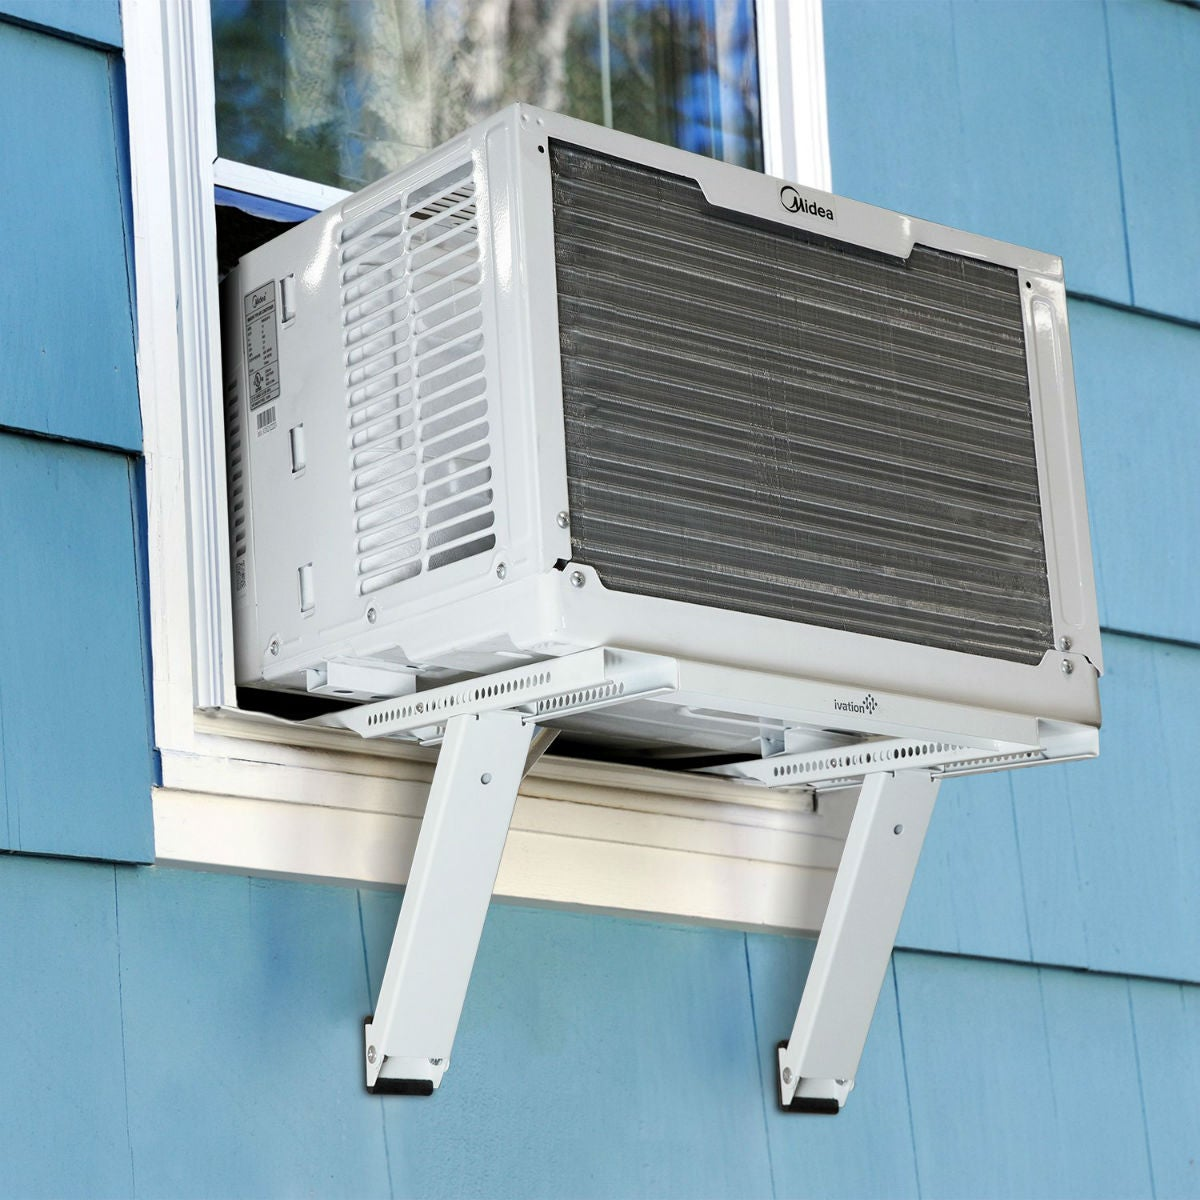 Top Tips for Installing a Window AC on Support Brackets